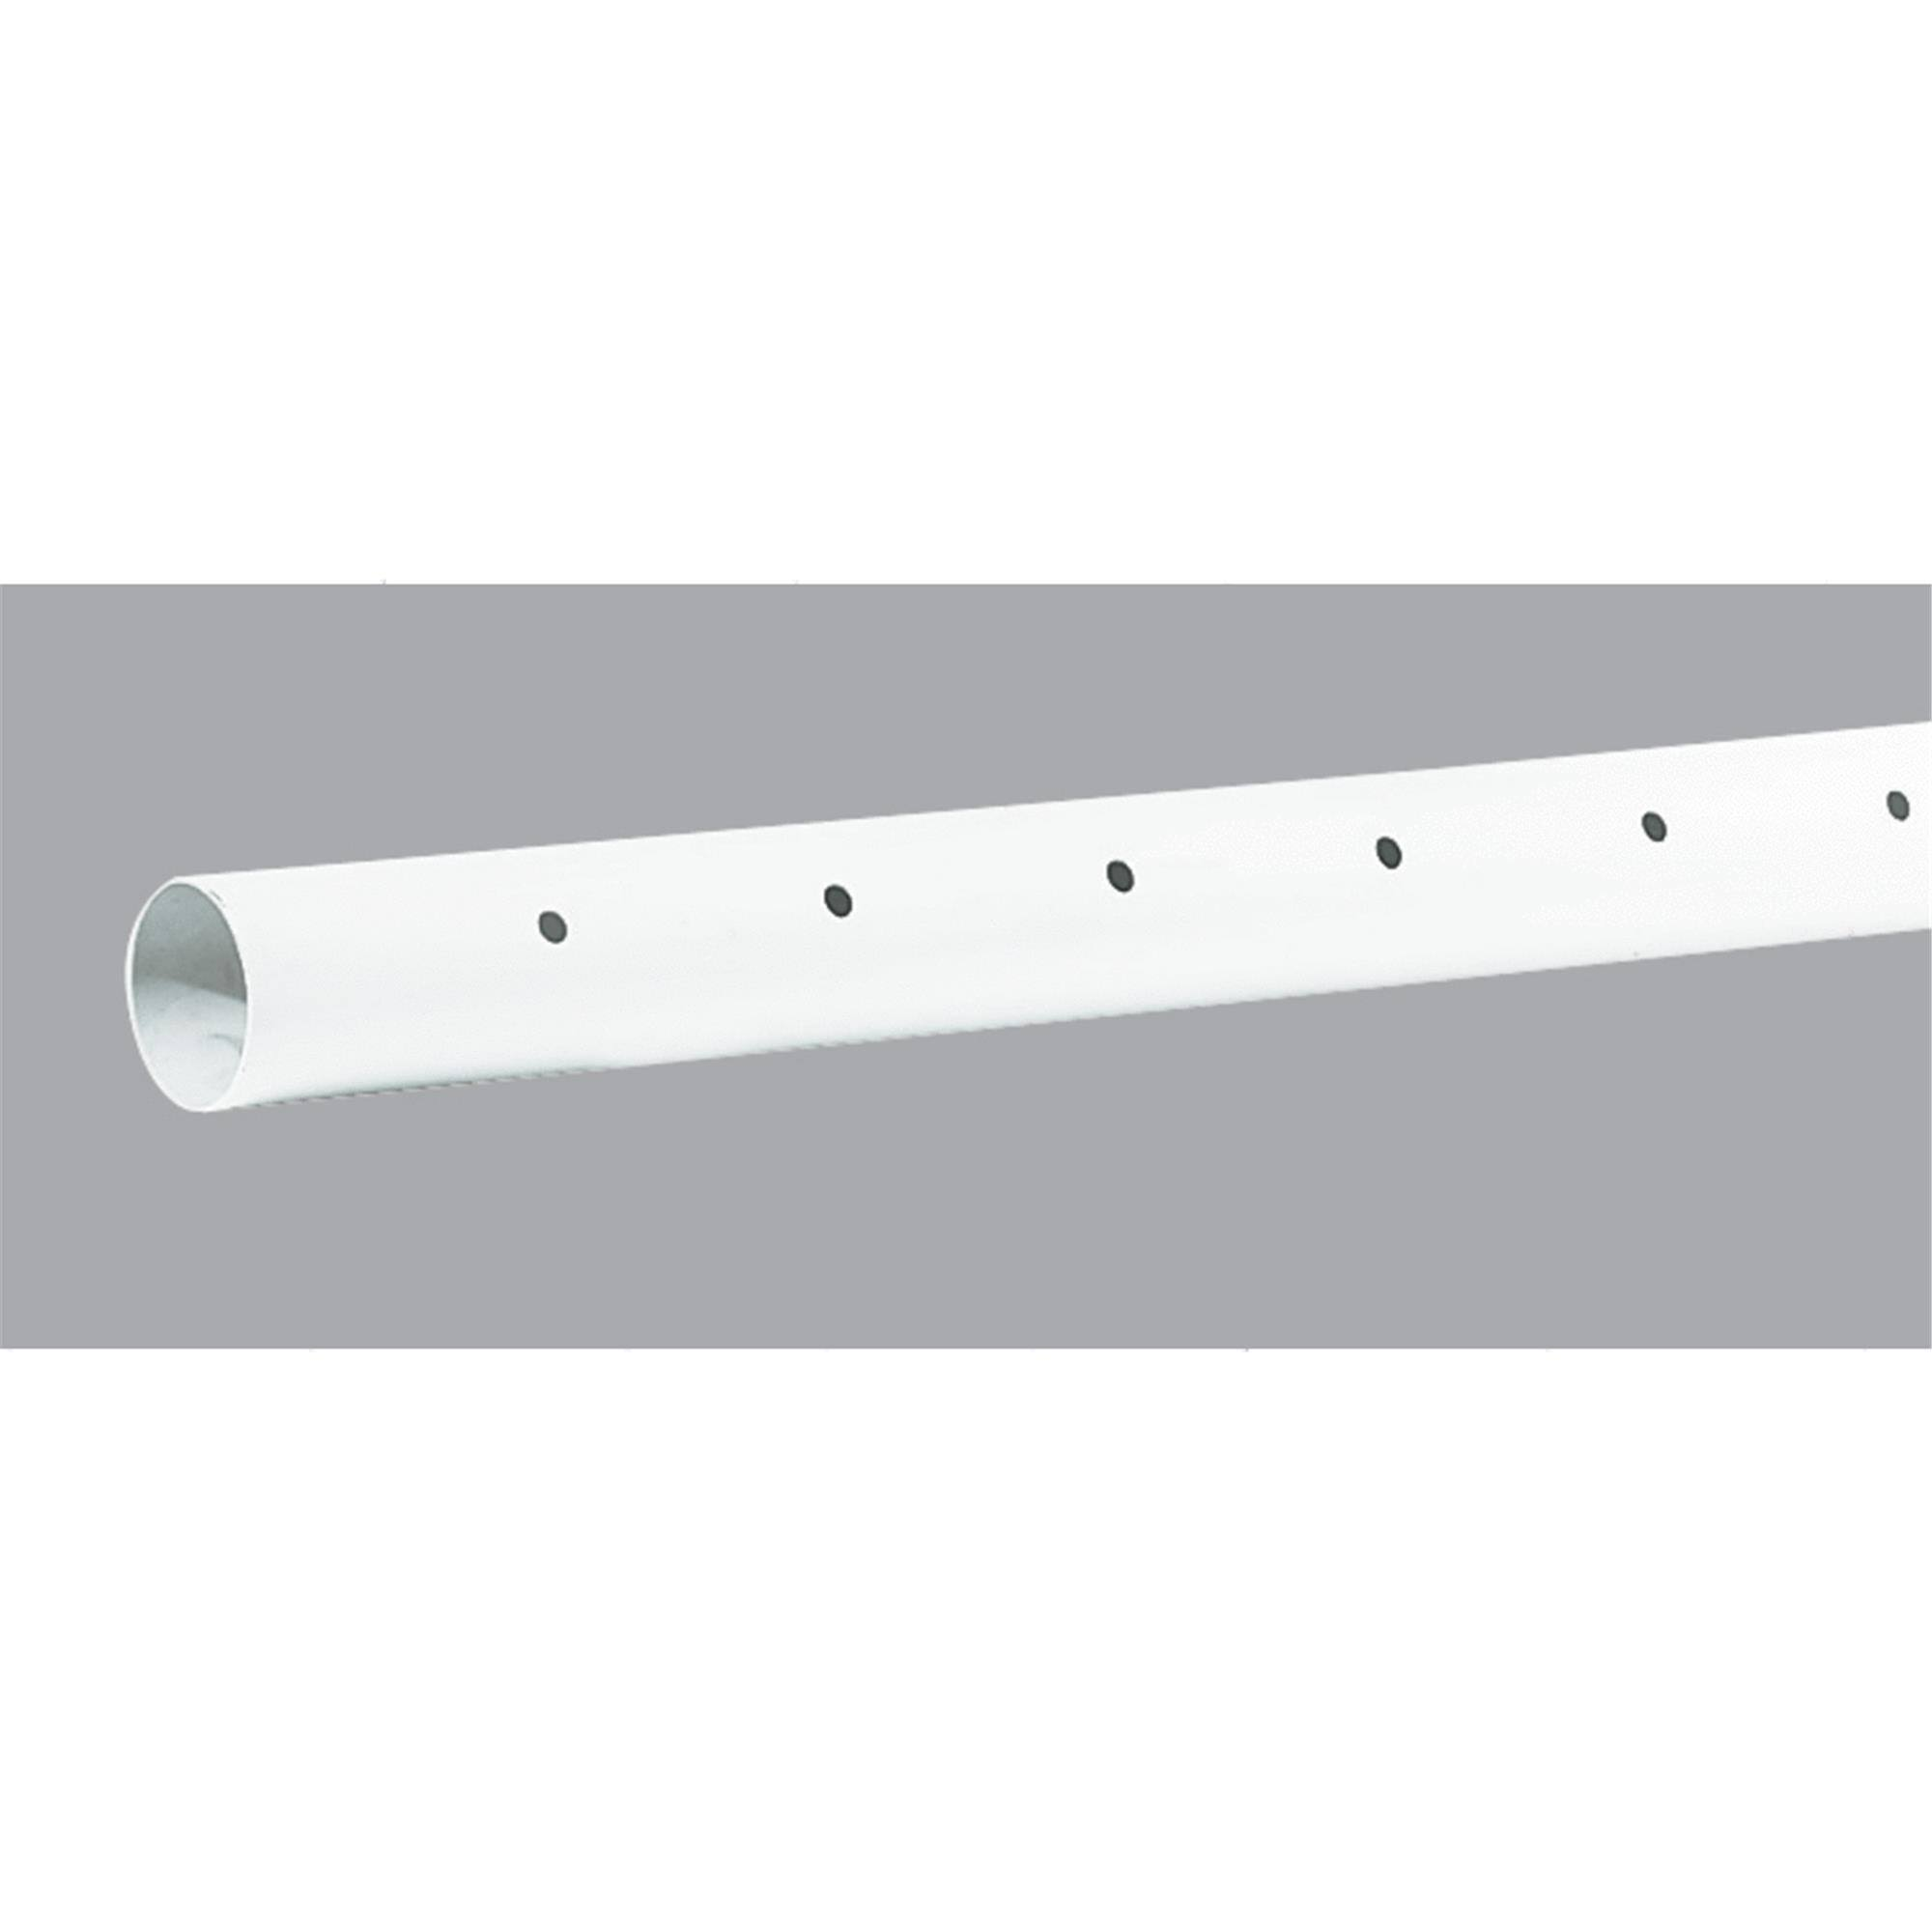 Genova Products Pvc Drain and Sewer Pipe - 10'